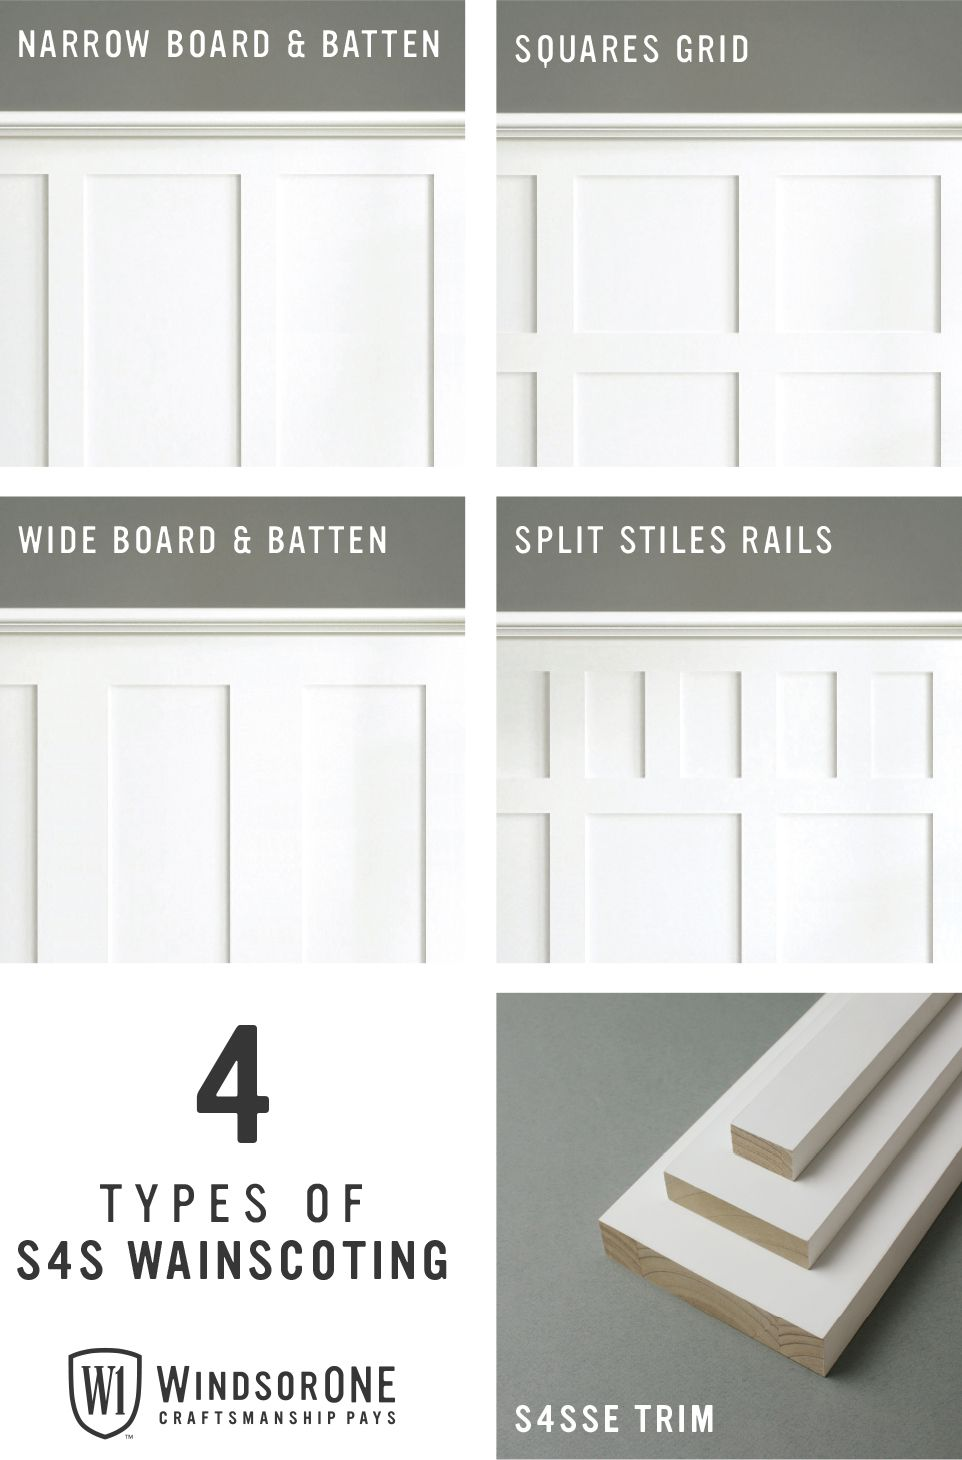 Wainscoting Styles with S4S Trim Boards